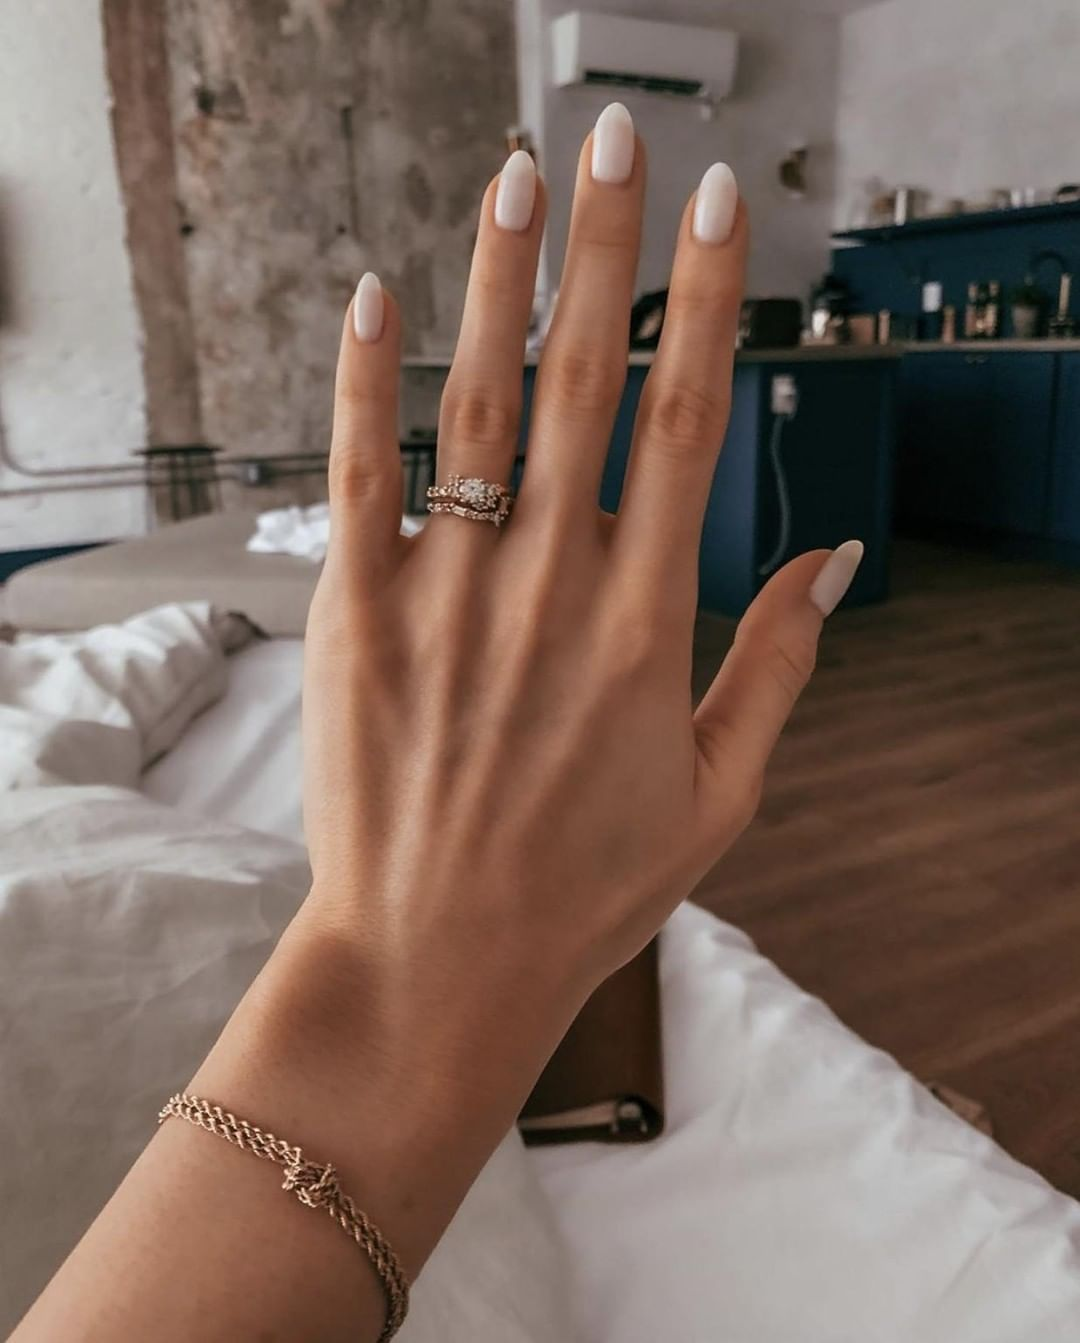 How To Fake Tan Your Hands